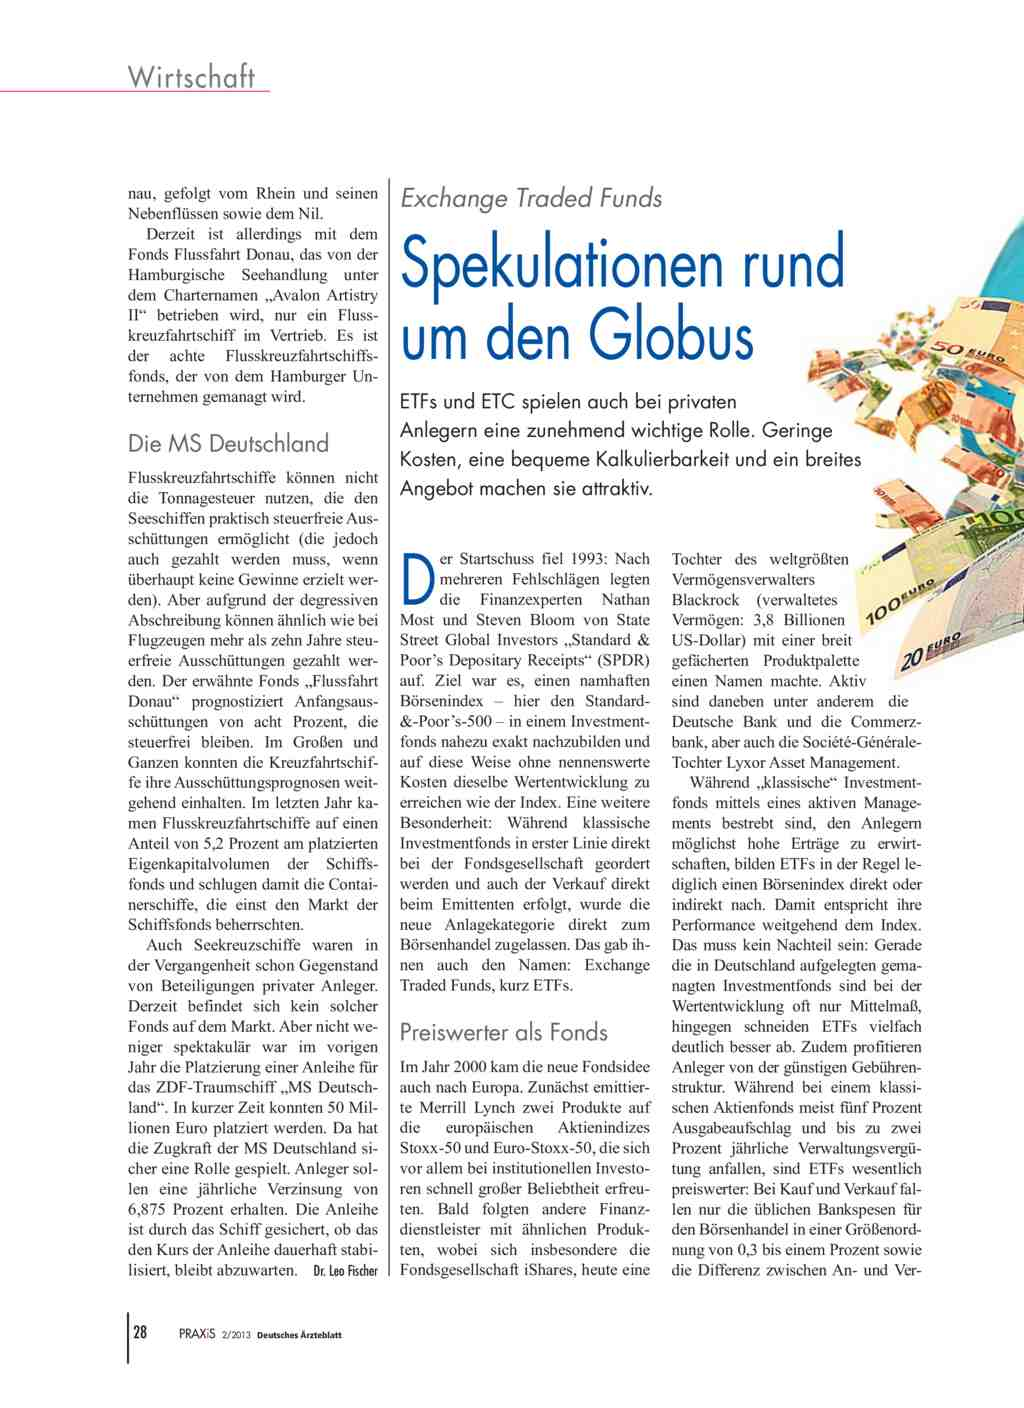 Exchange Traded Funds: Spekulationen rund um den Globus